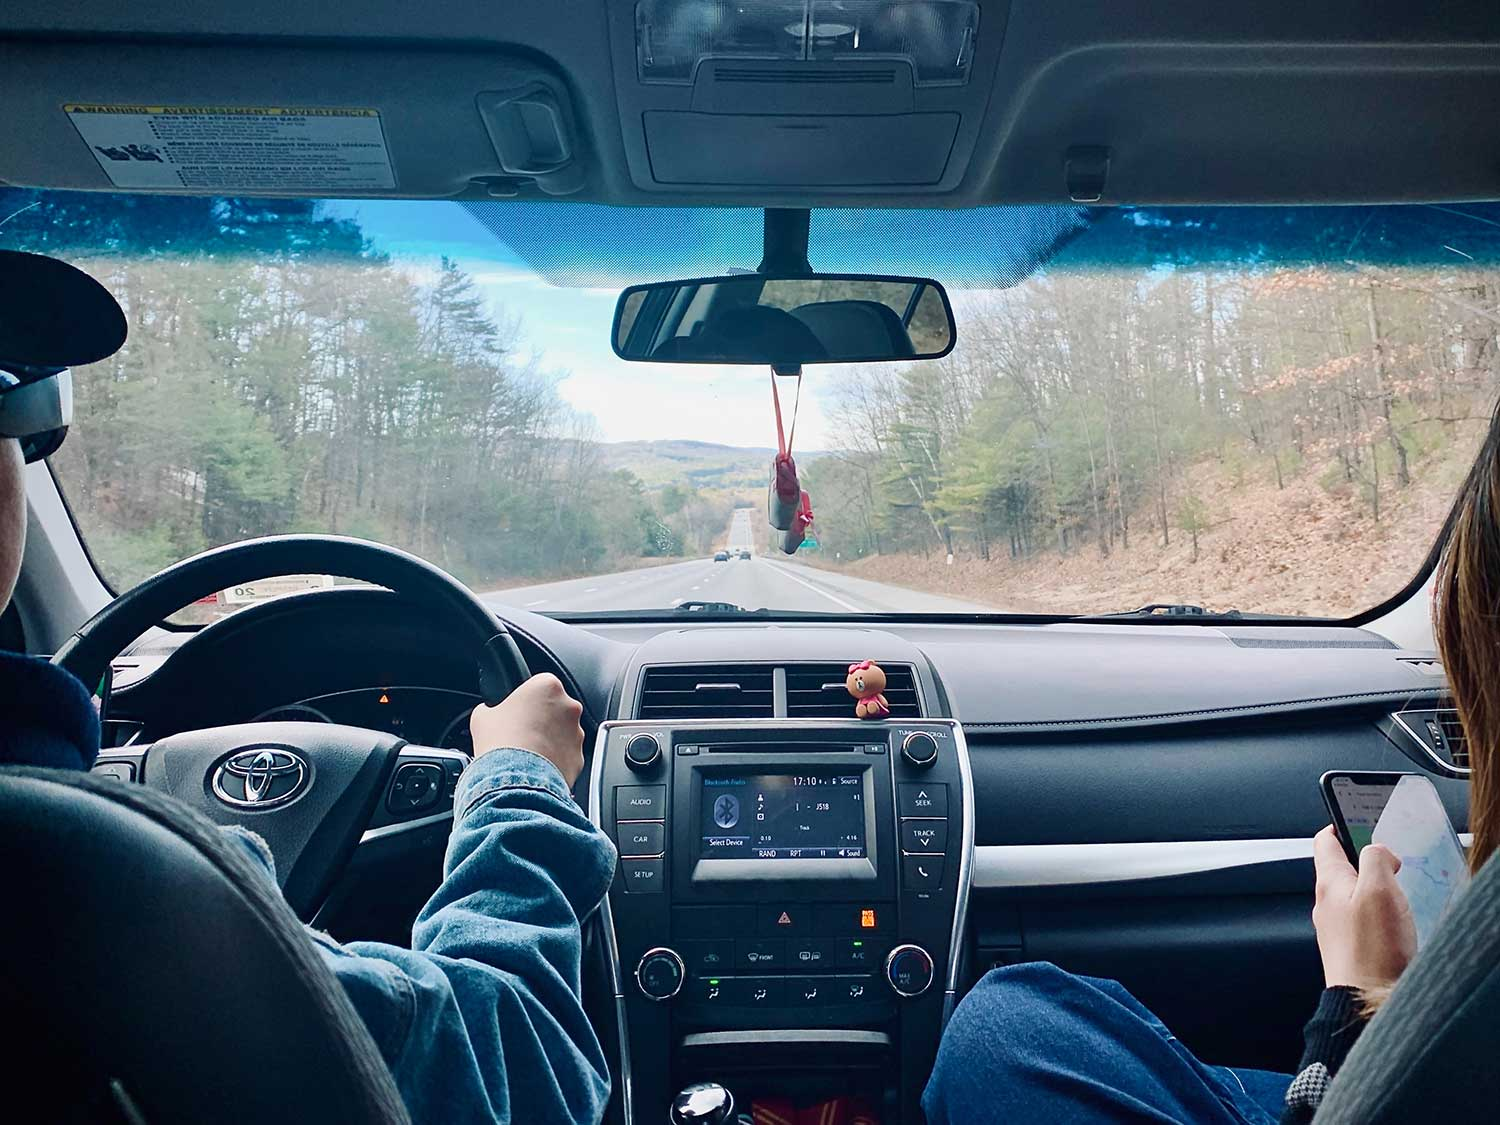 Man and woman driving in car on road trip.